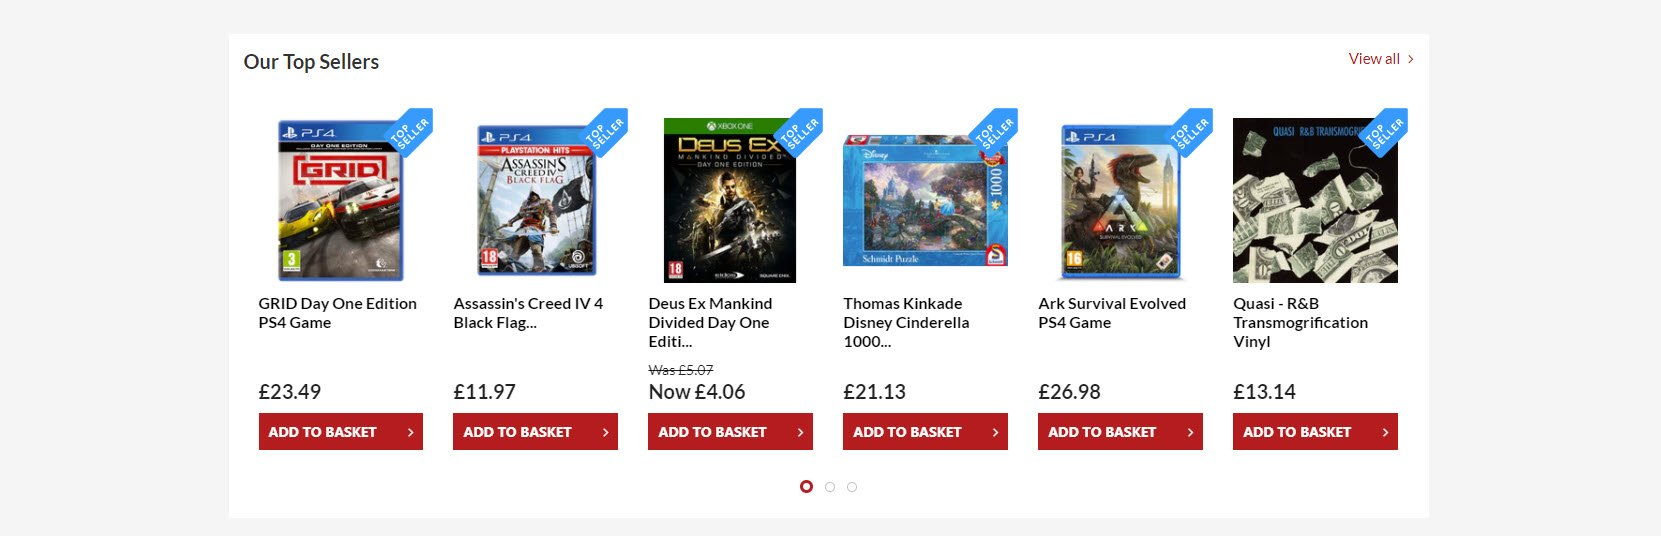 365 Games coupons and deals